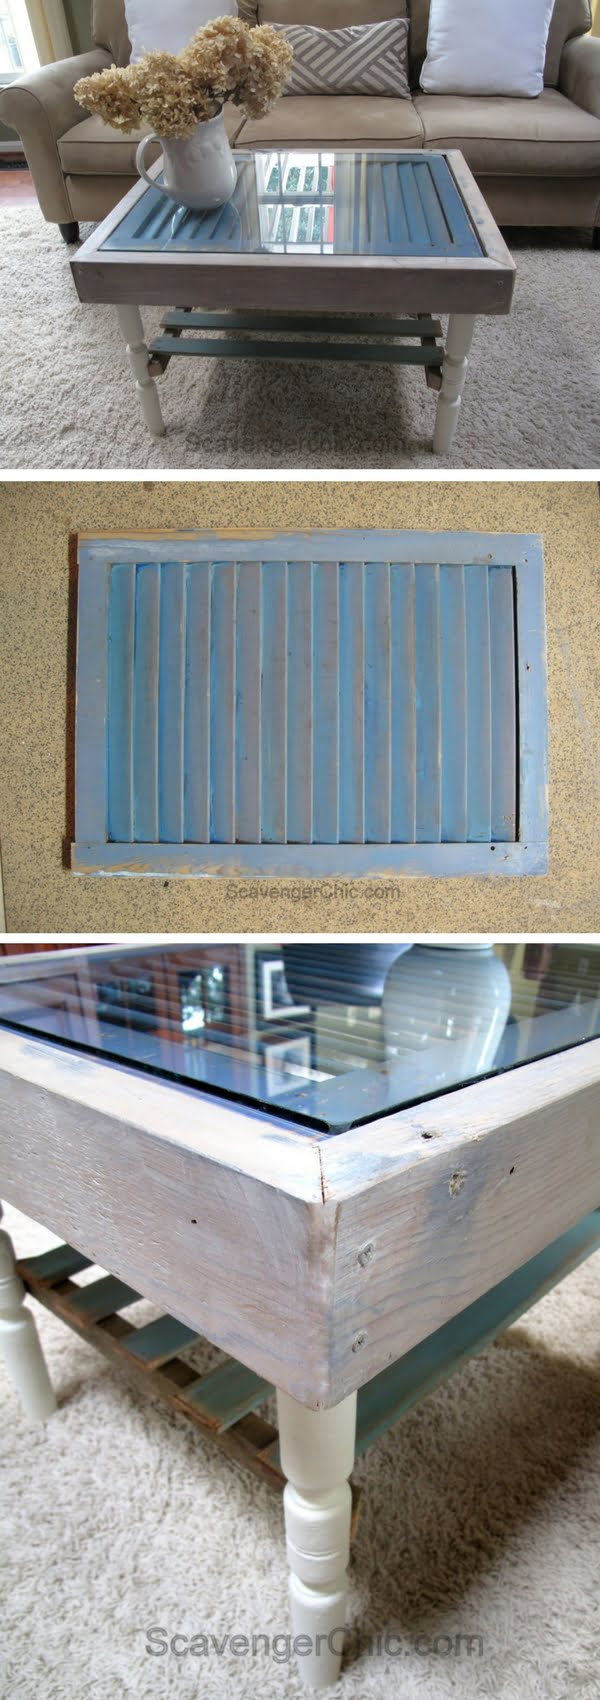 Check out how to build a DIY coffee table from old shutters